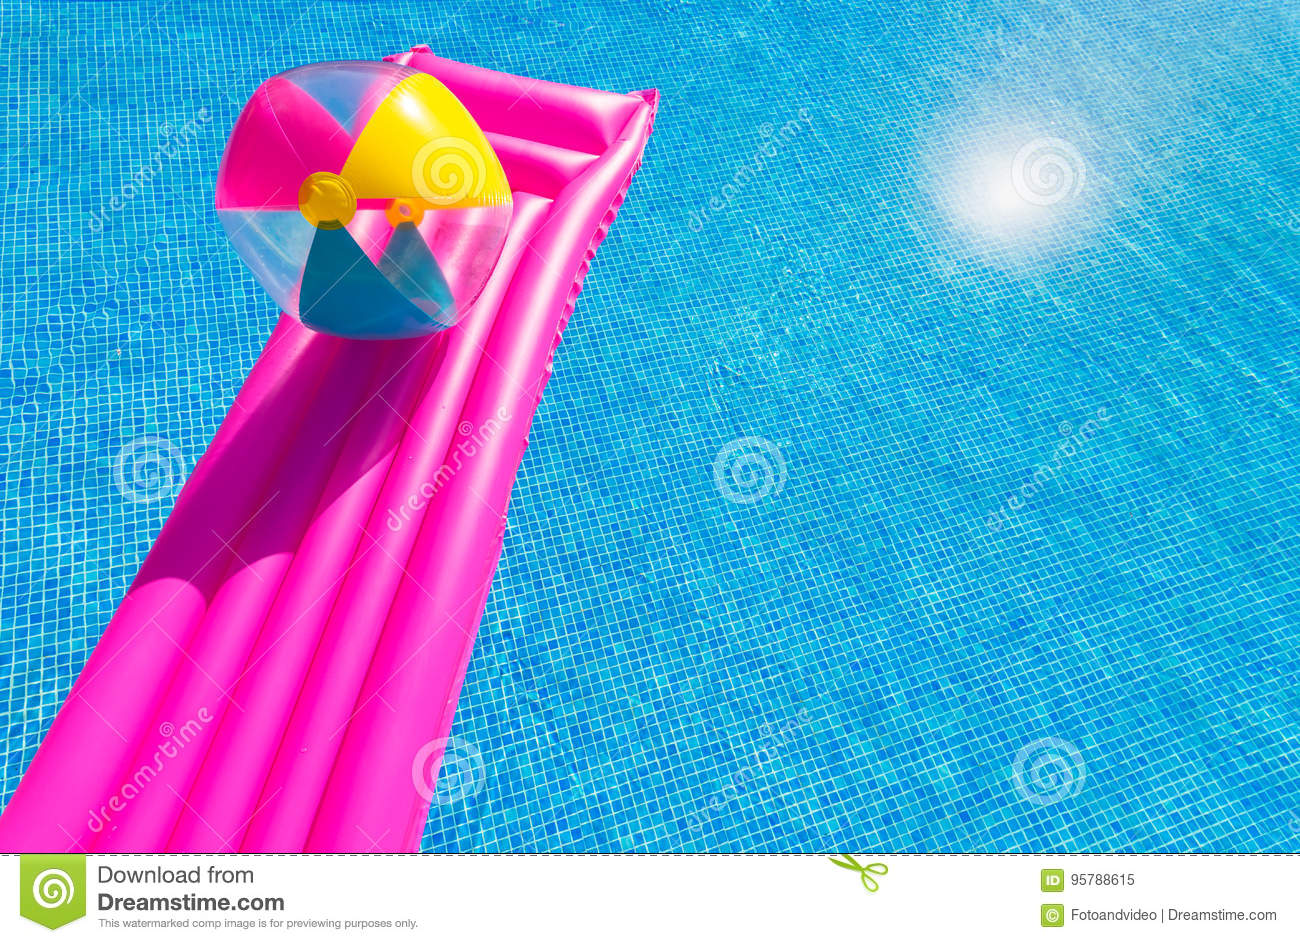 Swimming Pool Beach Ball Background pink air bed and beachball on swimming pool stock photo - image